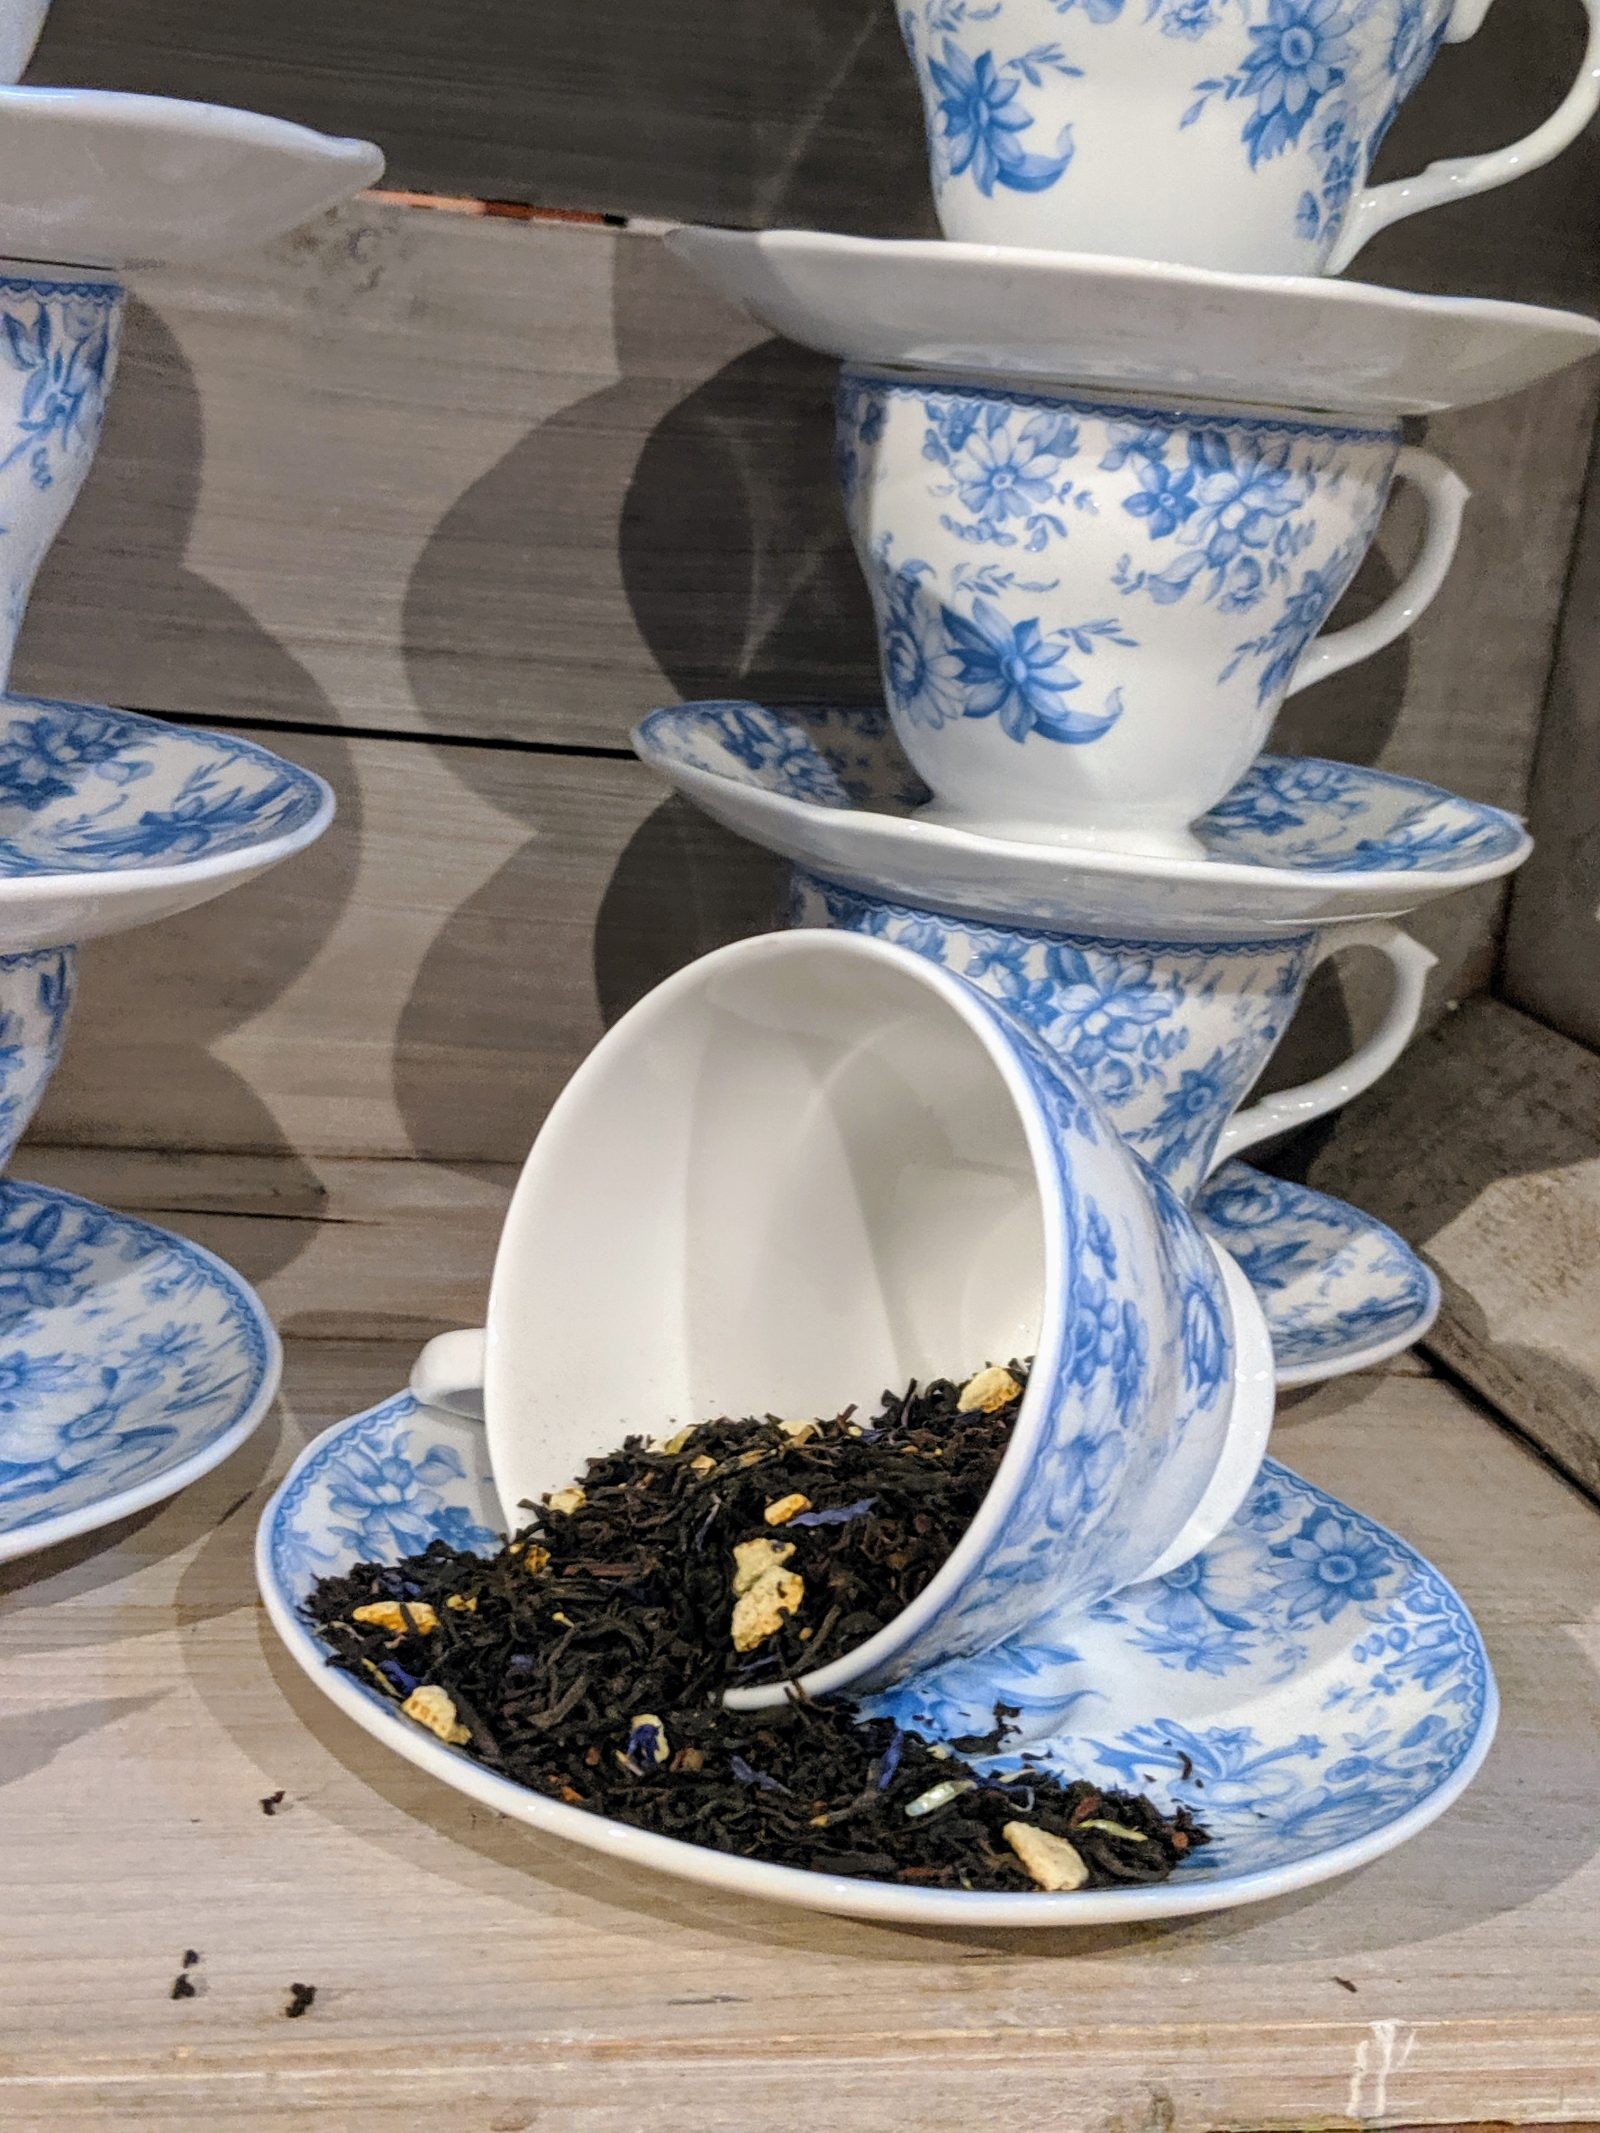 A tipped over blue and white teacup full of tealeaves